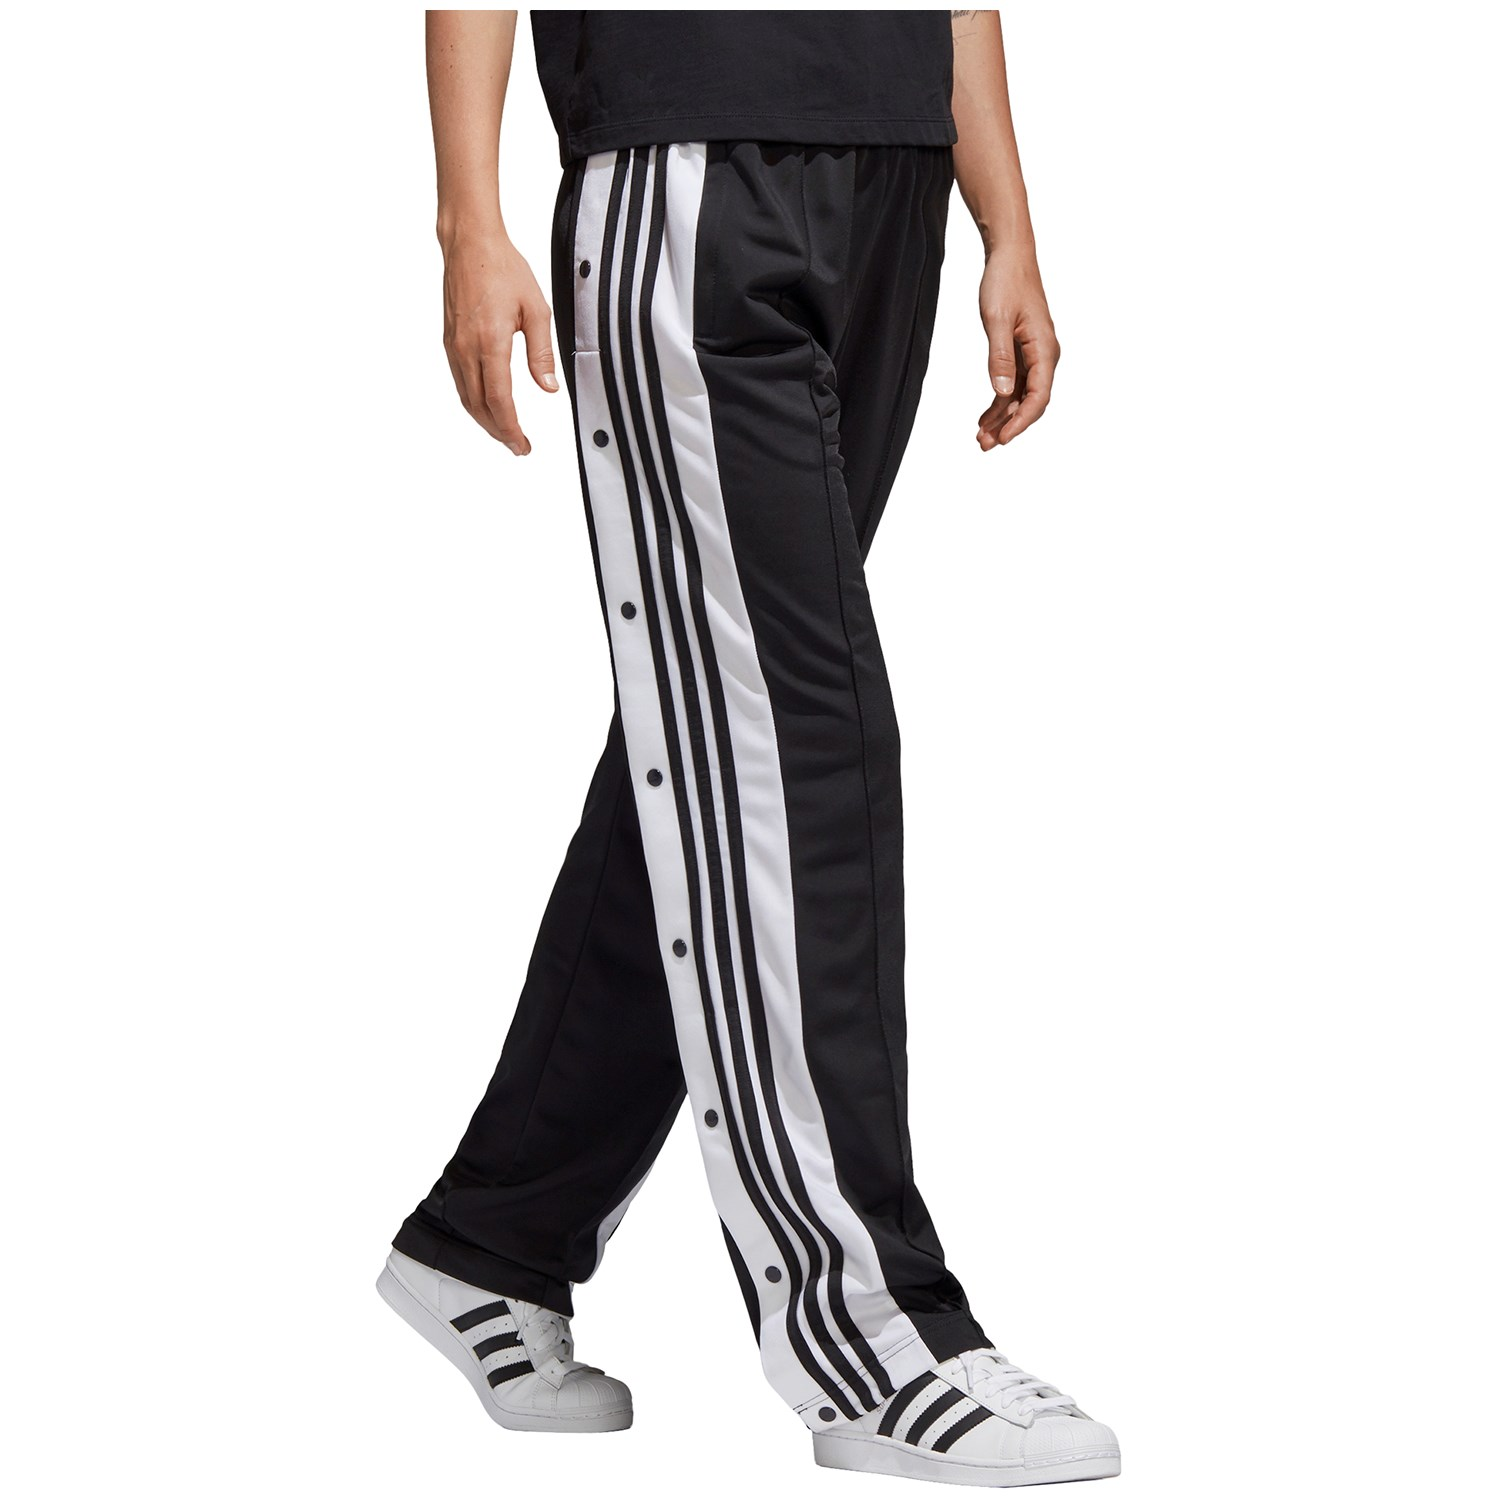 Adidas Adibreak Track Pants - Women's